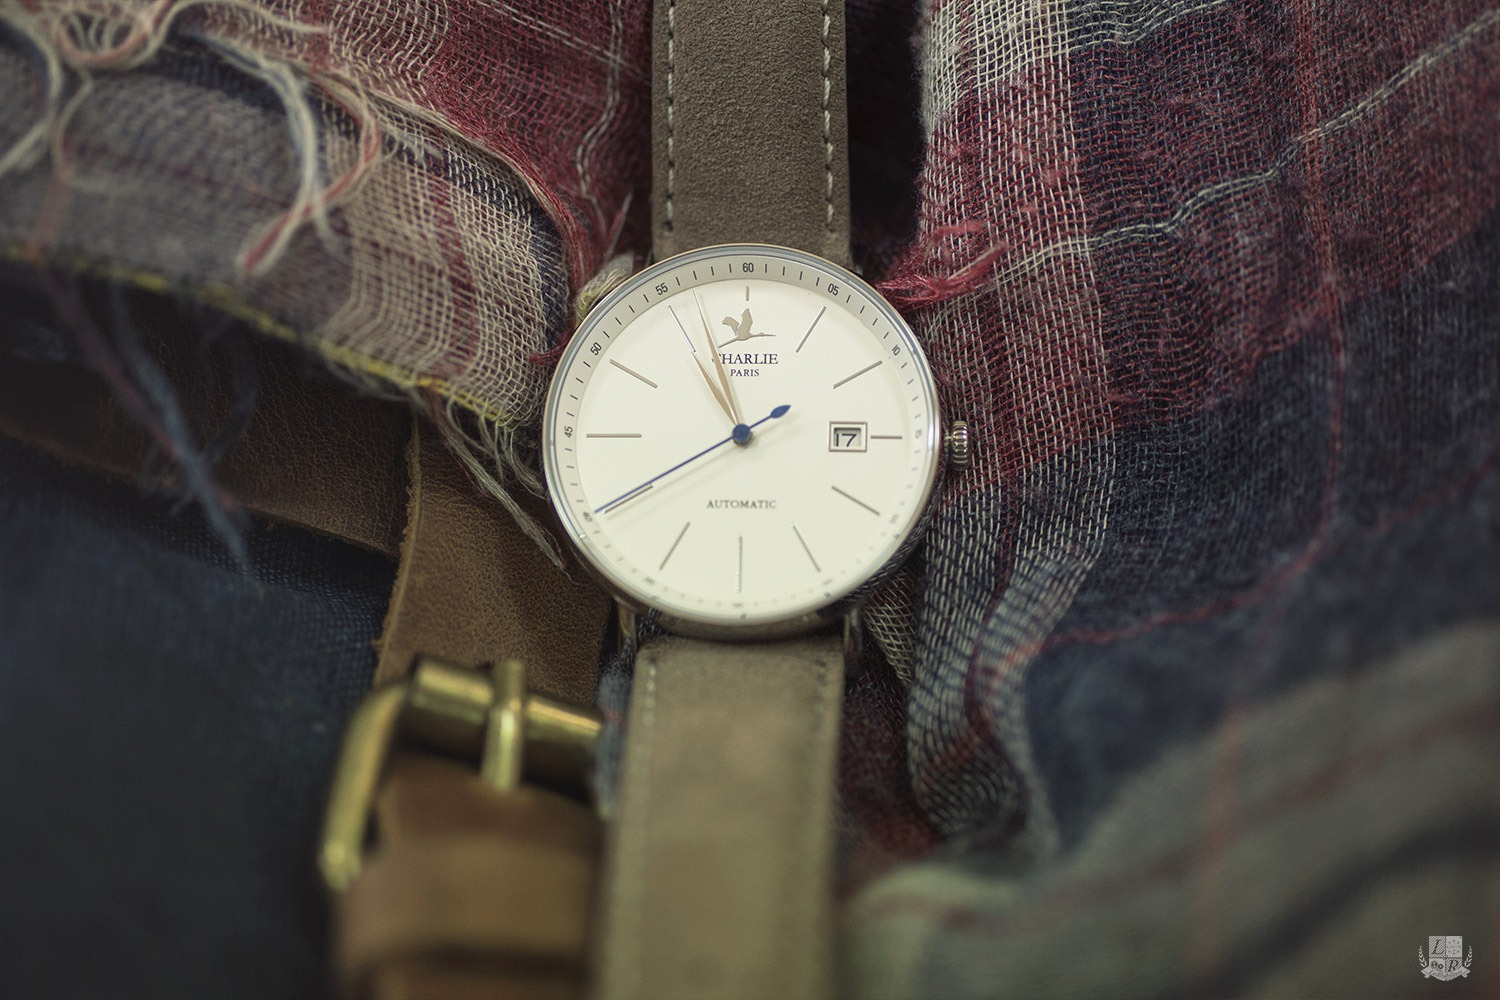 Charlie Watch - Automatique Initial